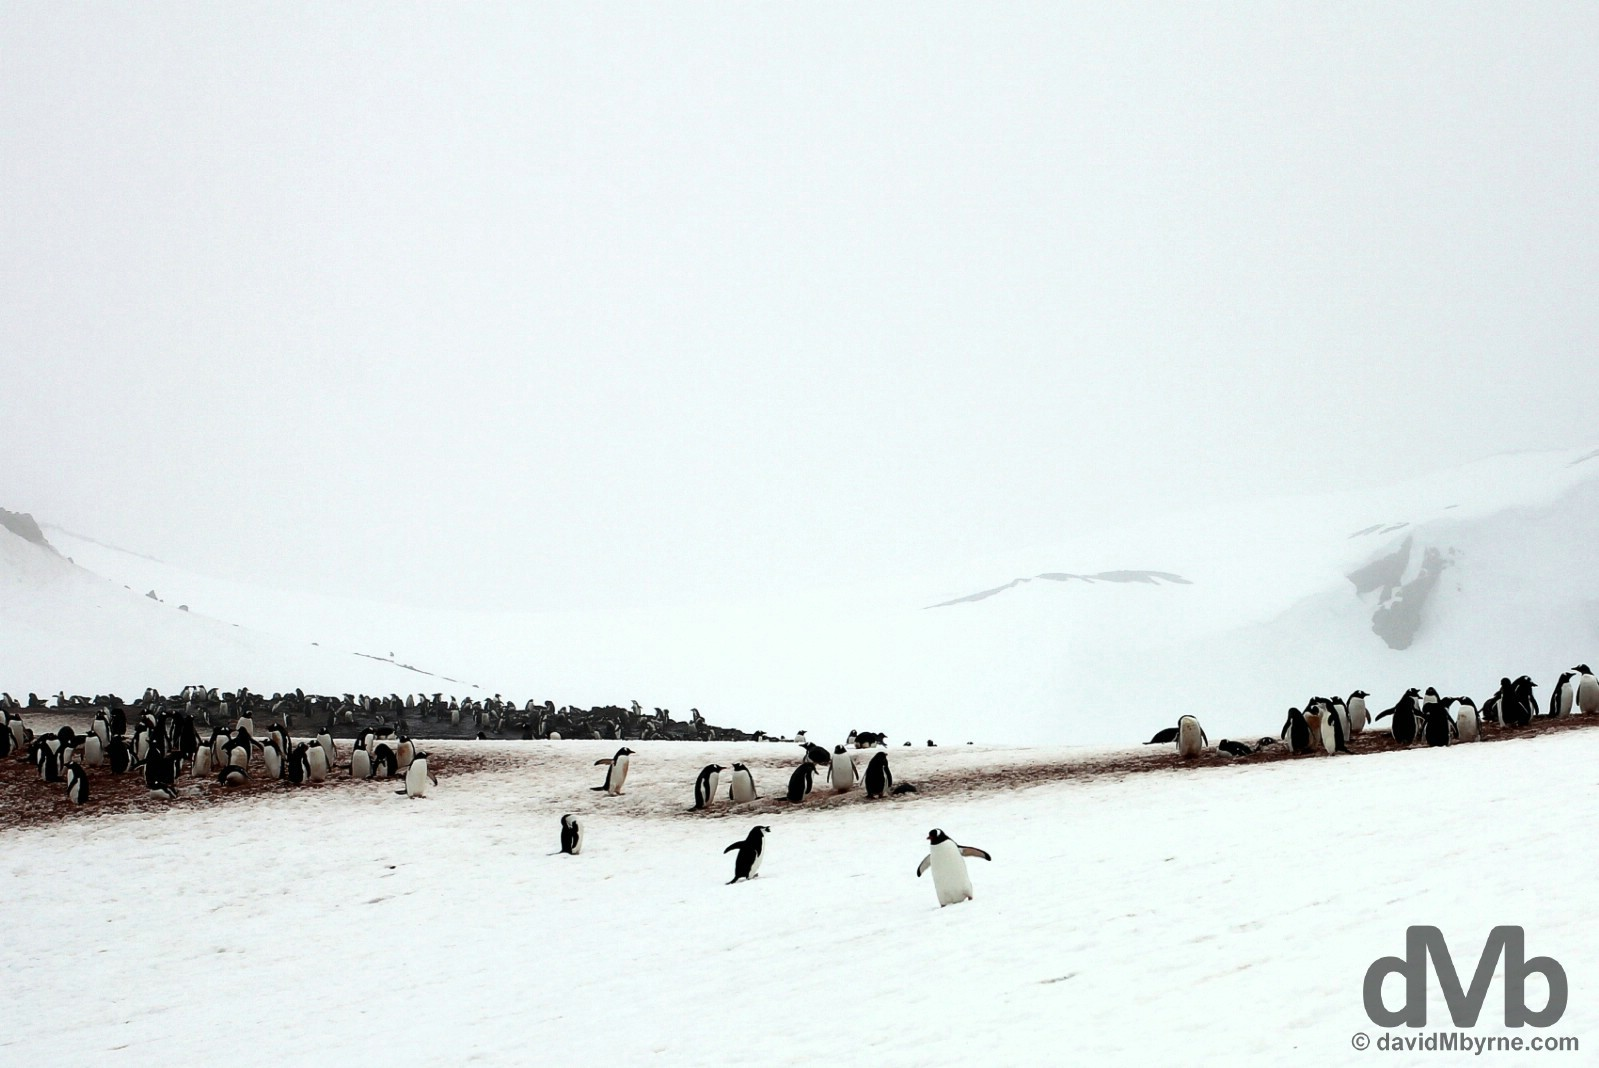 A penguin rookery on Barrientos Island of the Aitcho Island group of the South Shetland Islands, Antarctica. November 28, 2015.